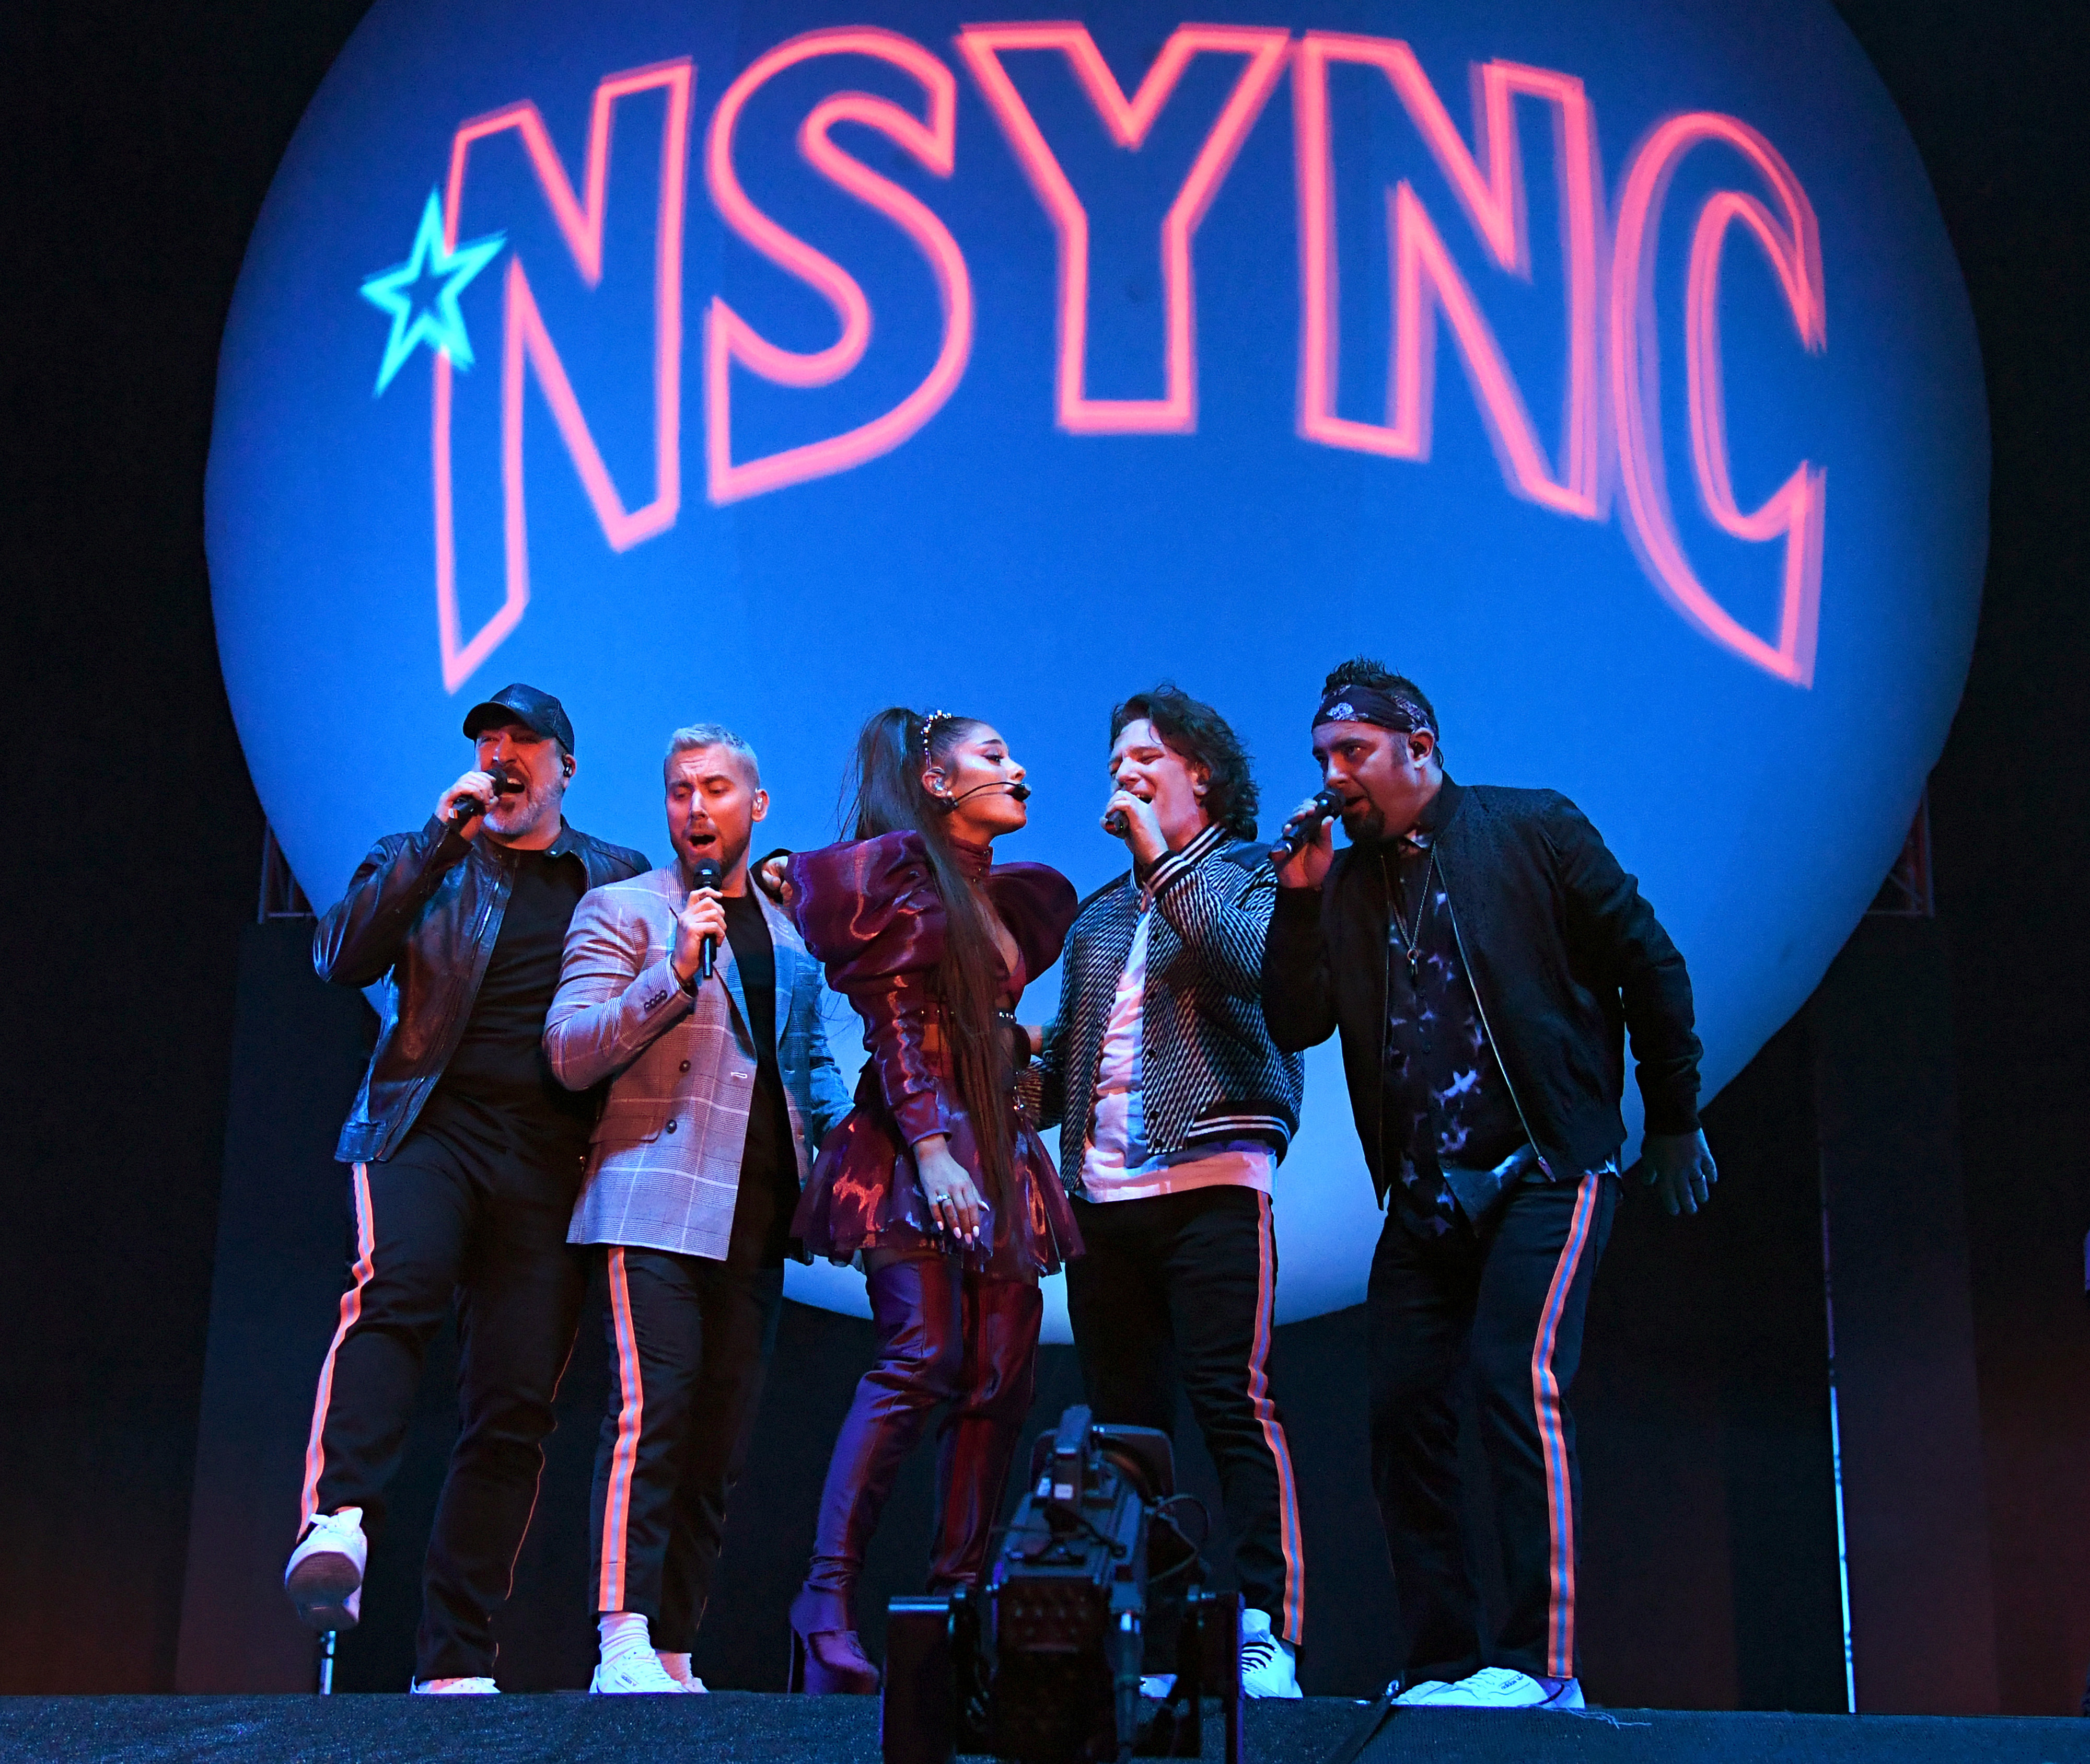 Ariana Grande performs with *NSYNC members Joey Fatone, Lance Bass, JC Chasez and Chris Kirkpatrick on the Coachella Stage during the Coachella Valley Music and Arts Festival in Indio, California, on April 14, 2019.